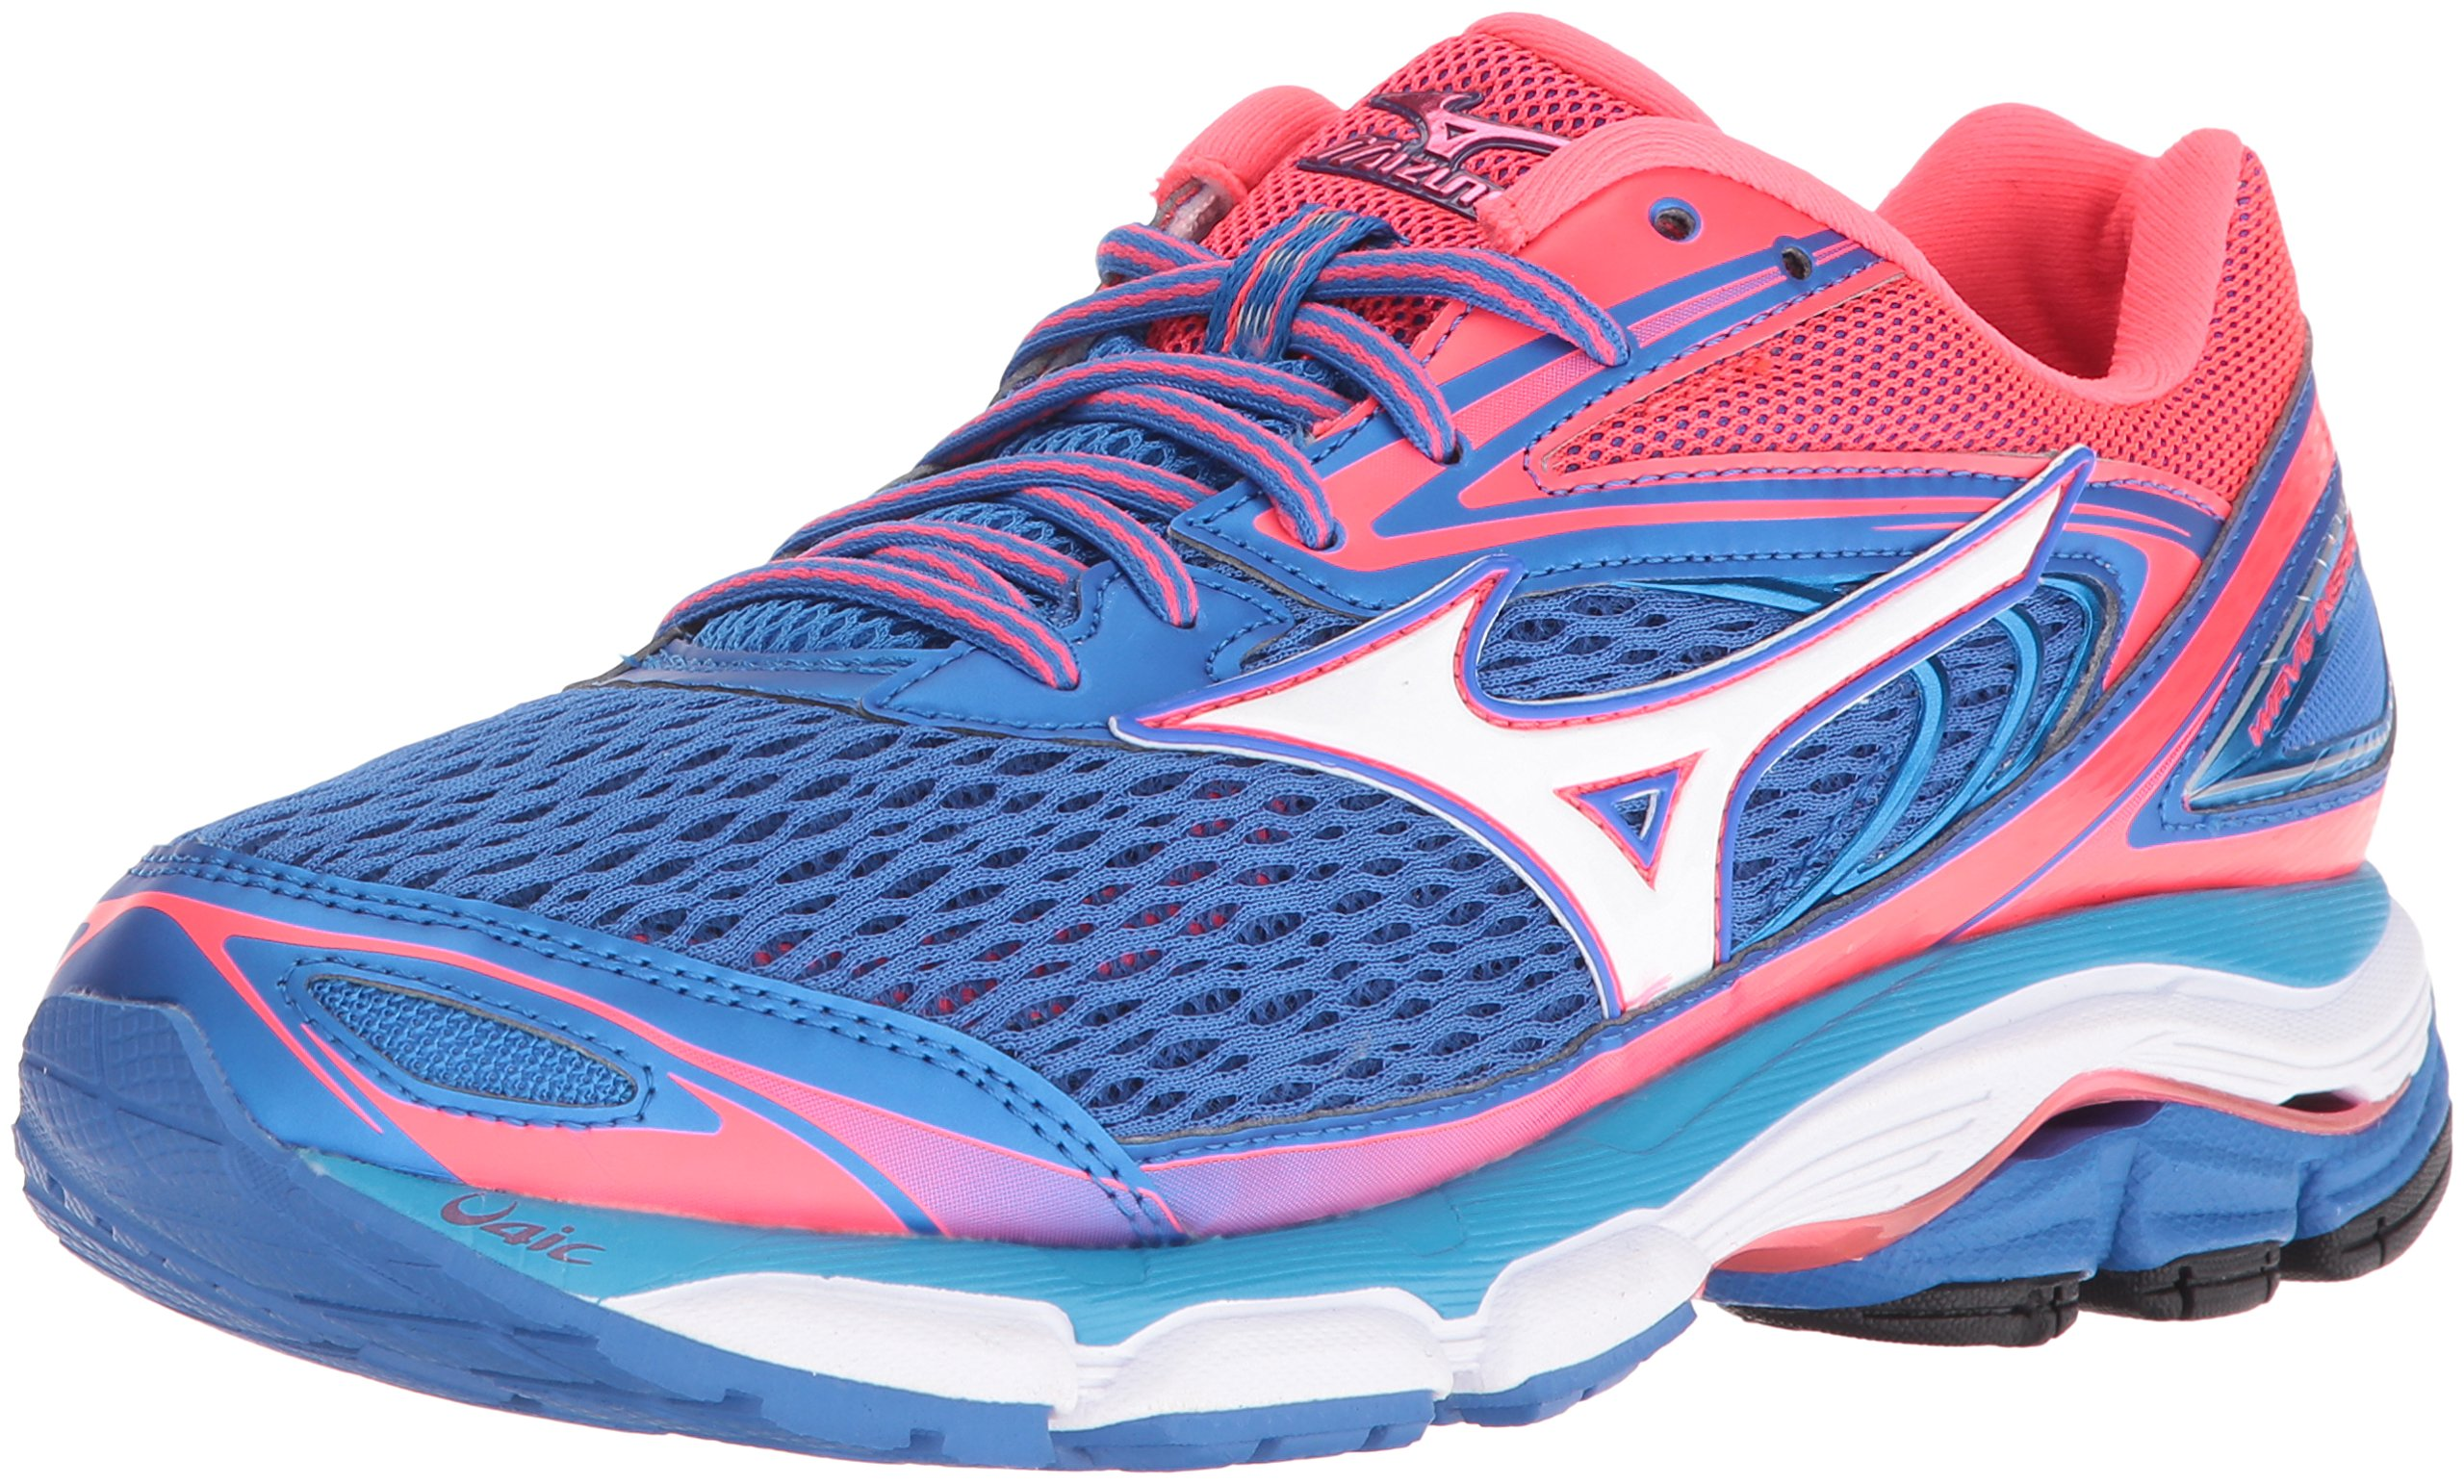 Mizuno Women's Wave Inspire 13 Running Shoe, Malibu Blue/Pink, 10.5 D US